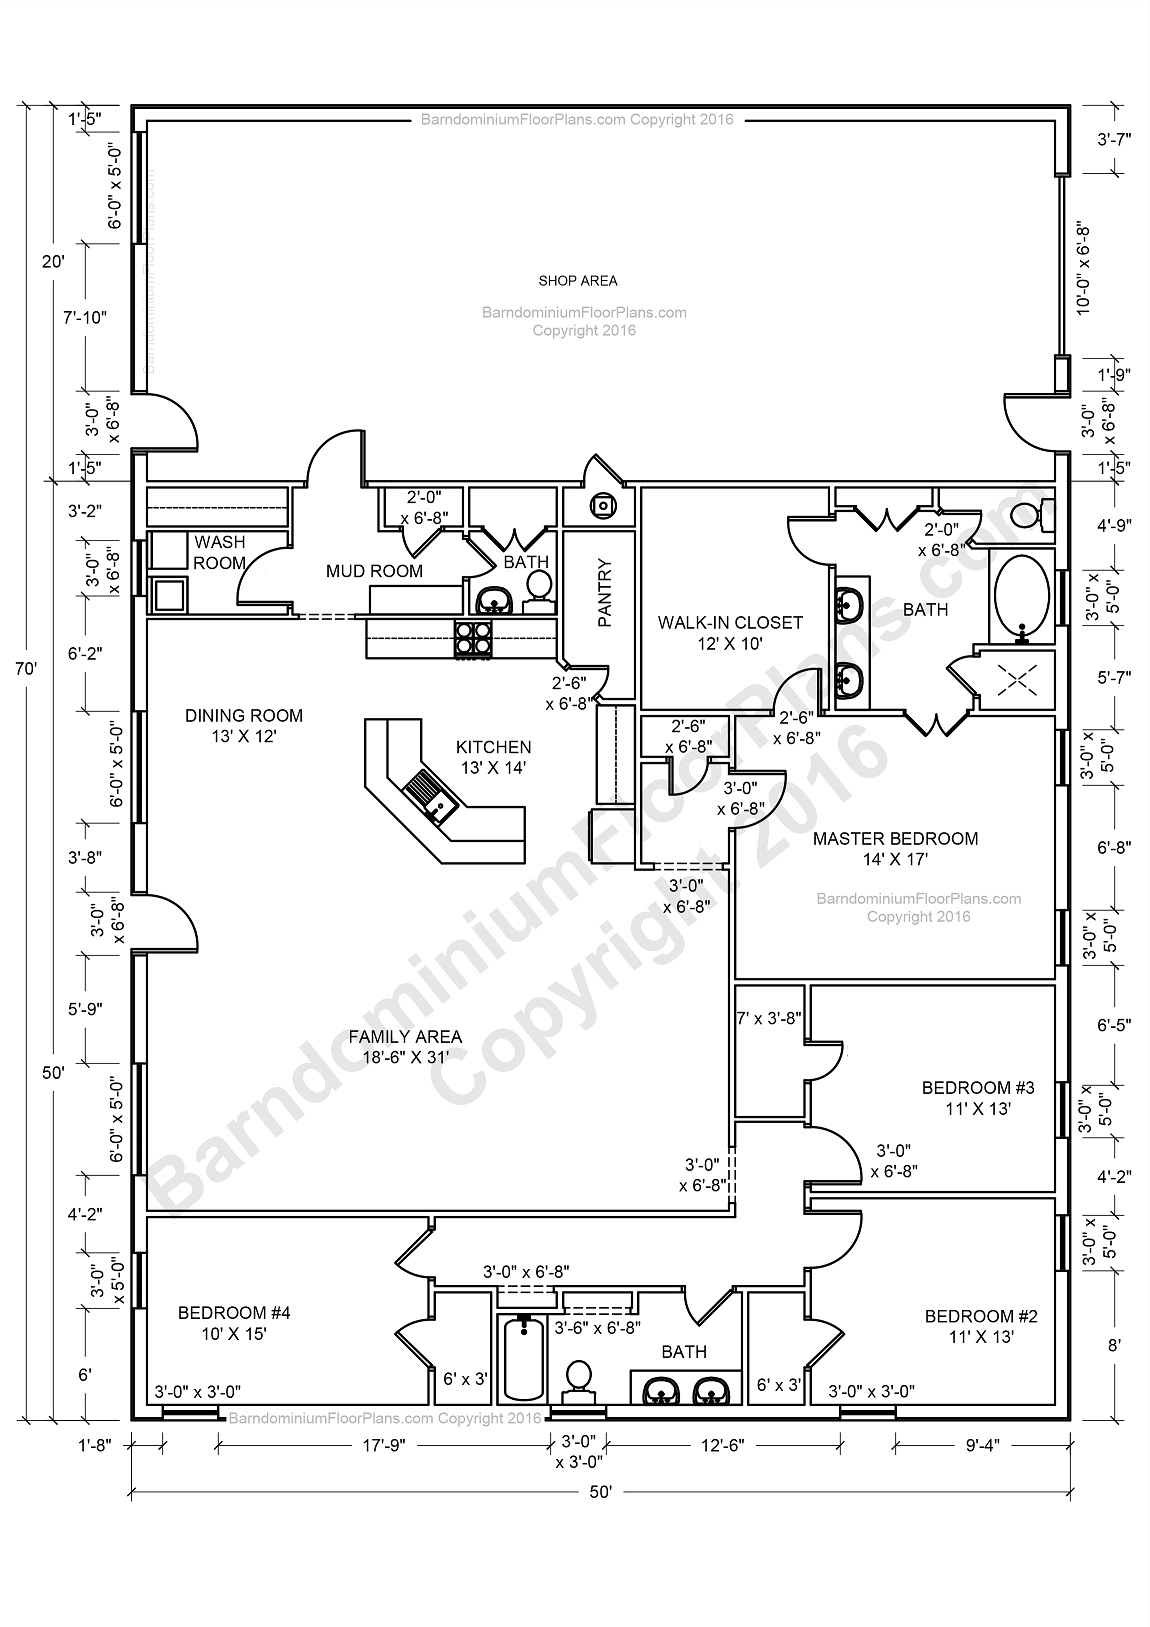 Barndominium floor plans barndominium floor plans 1 800 for Steel building home floor plans